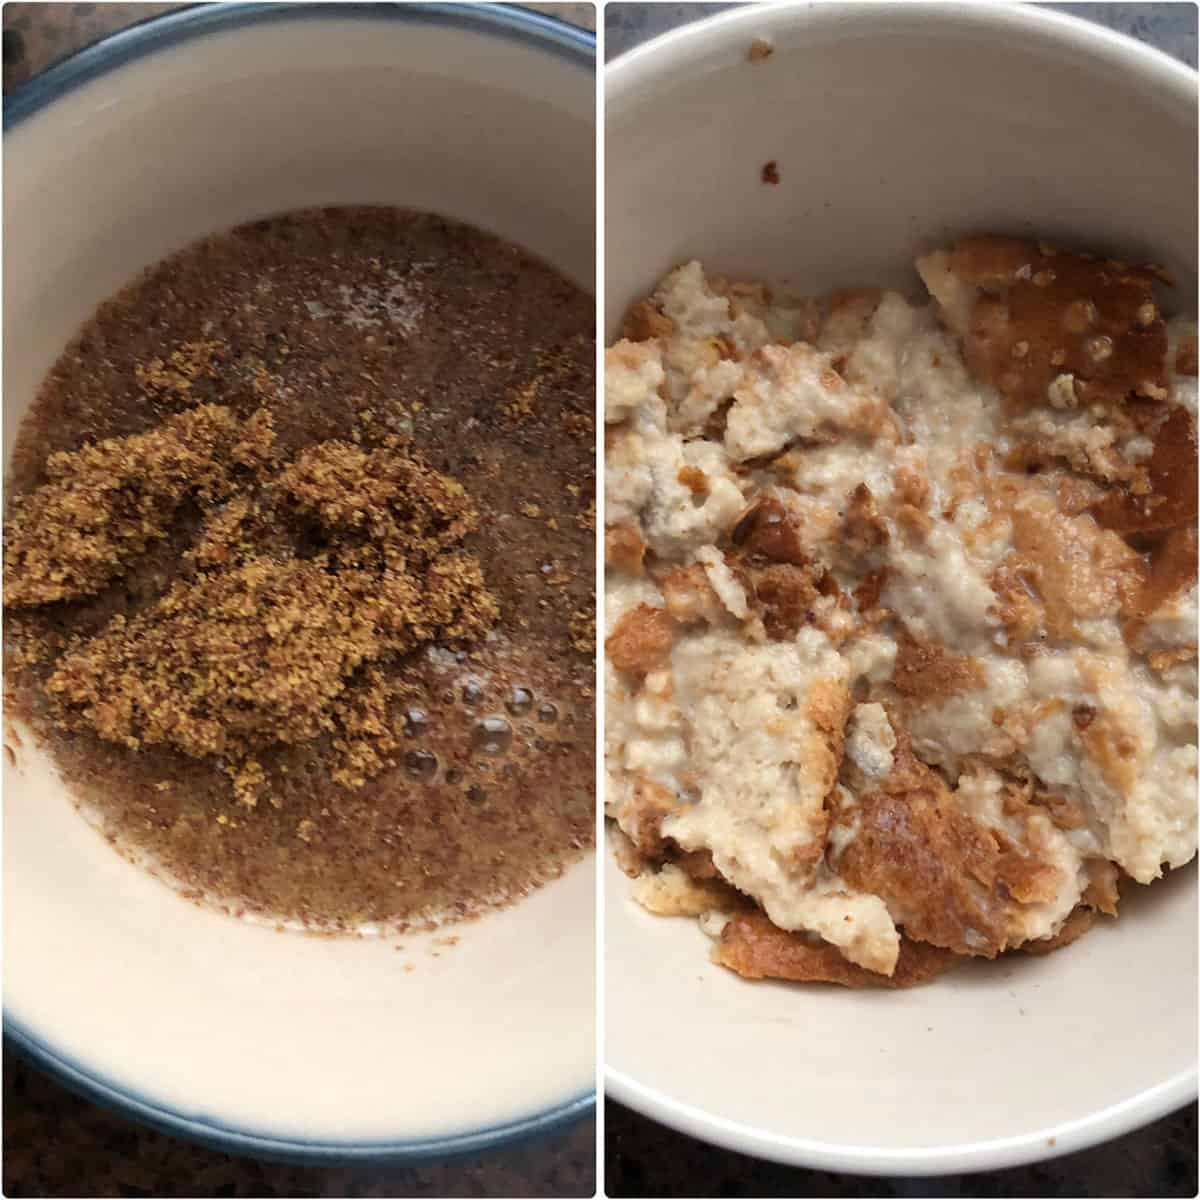 Side by side photos showing flaxseed meal and bread soaked in milk